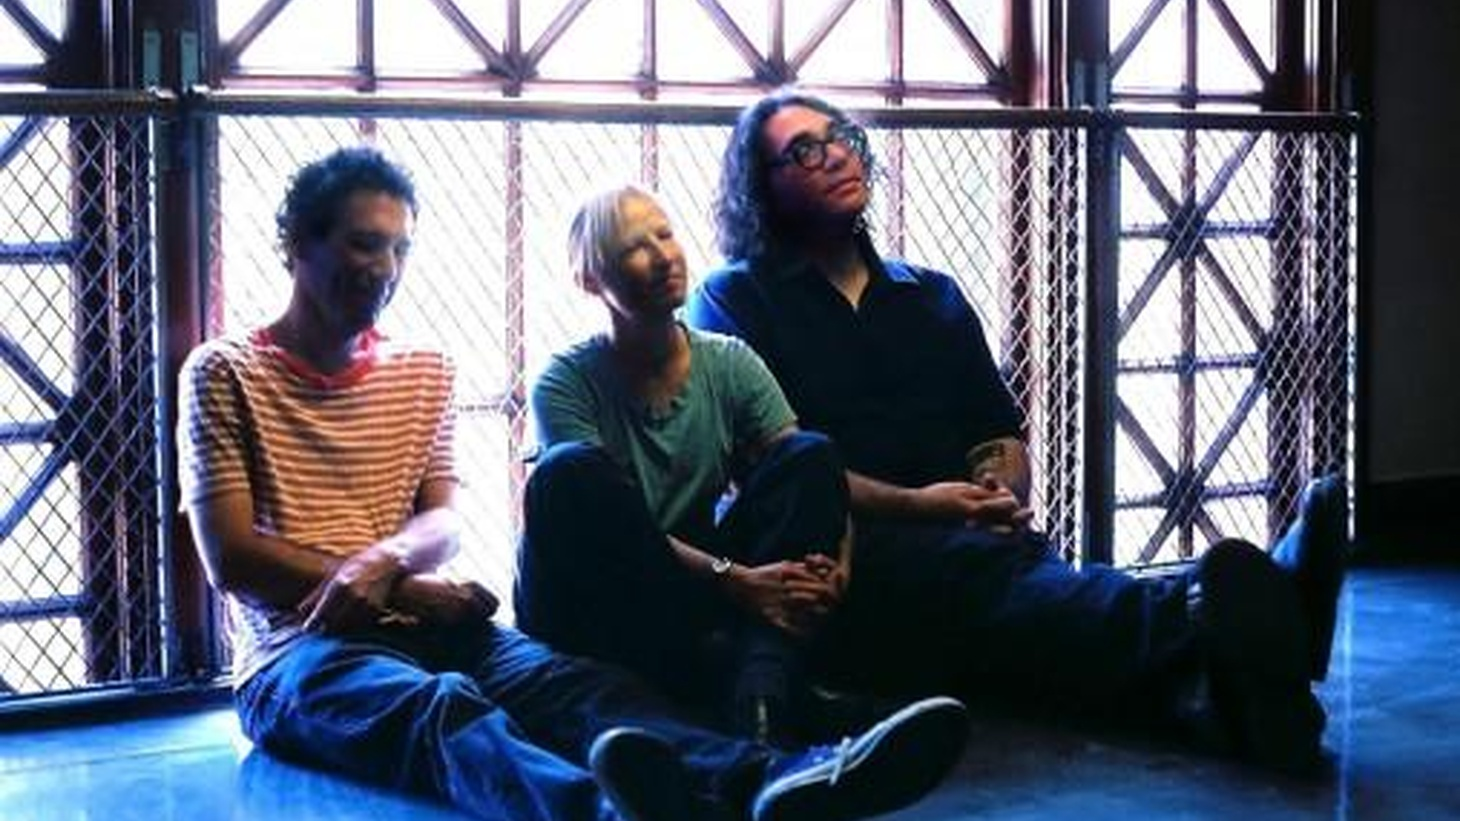 Yo La Tengo's new release highlights the band's reputation for sonic innovation. Produced by Tortoise's John McEntire, Yo La Tengo sound strong after almost 30 years.